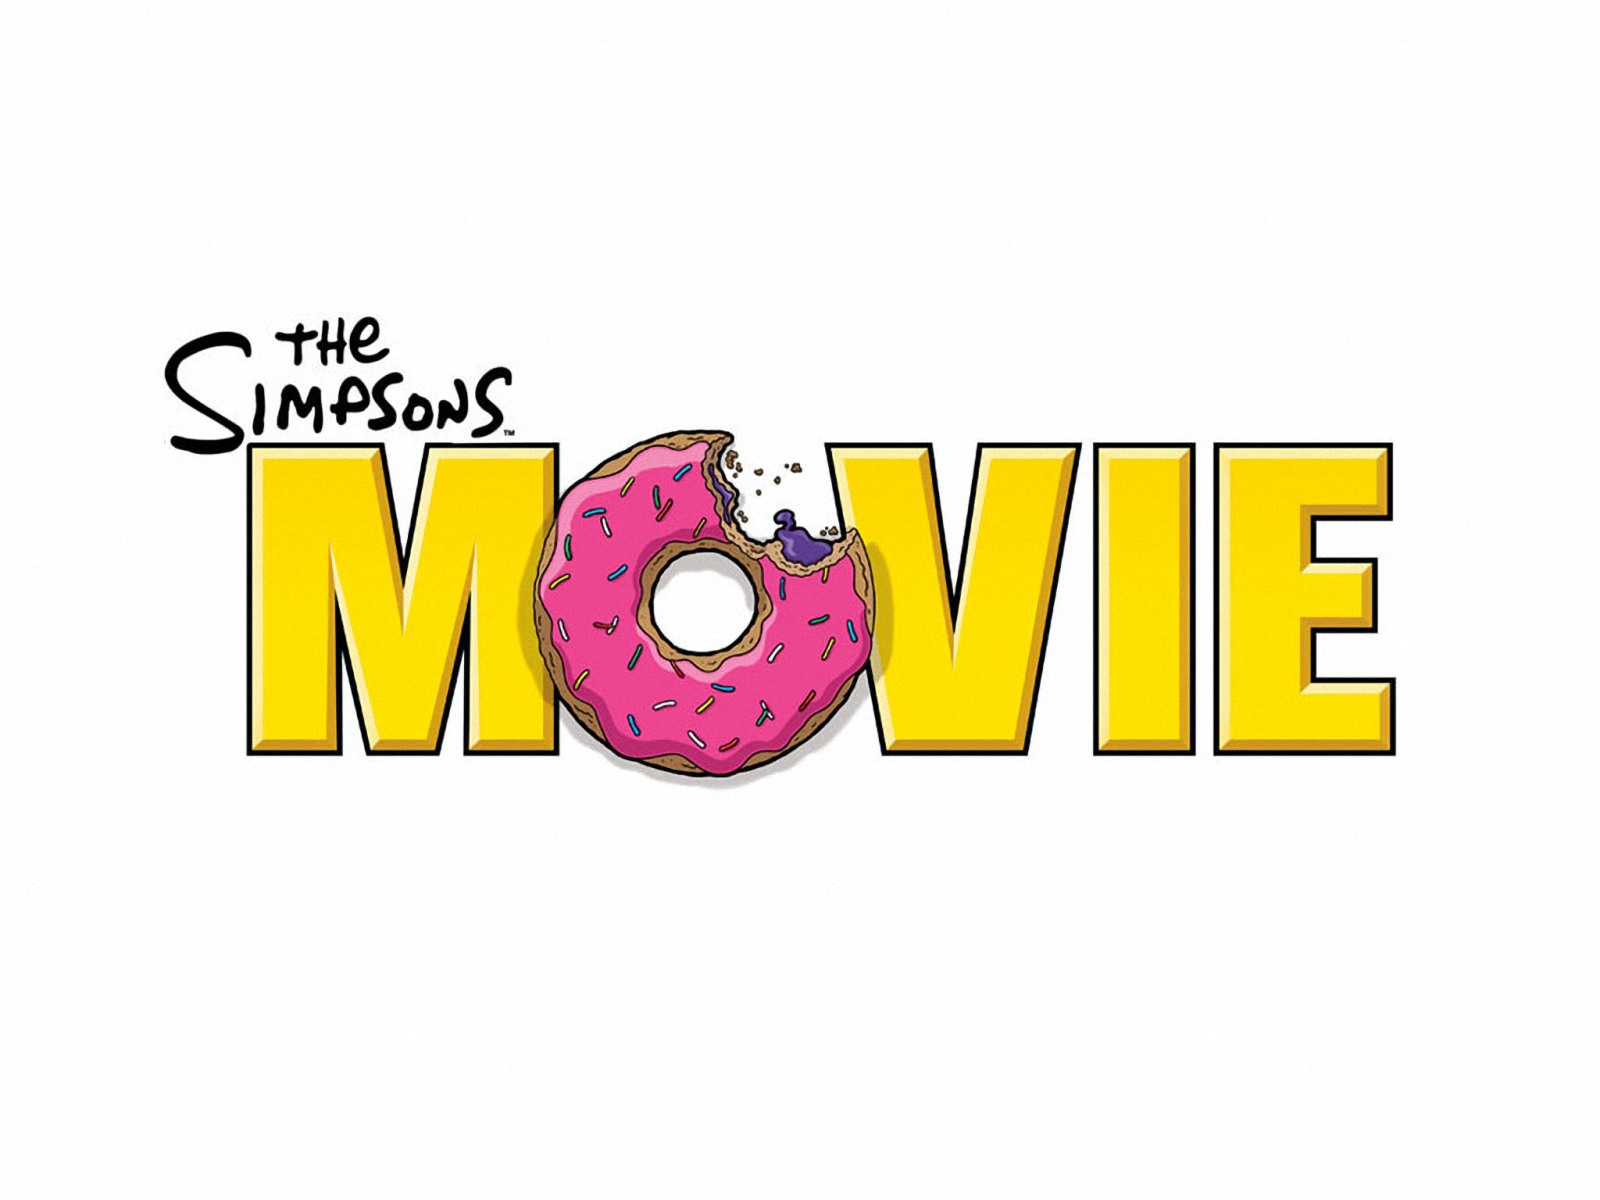 The Simpsons Movie Poster Wallpapers The Simpsons Movie Simpsons Movie 1600x1200 Wallpaper Teahub Io